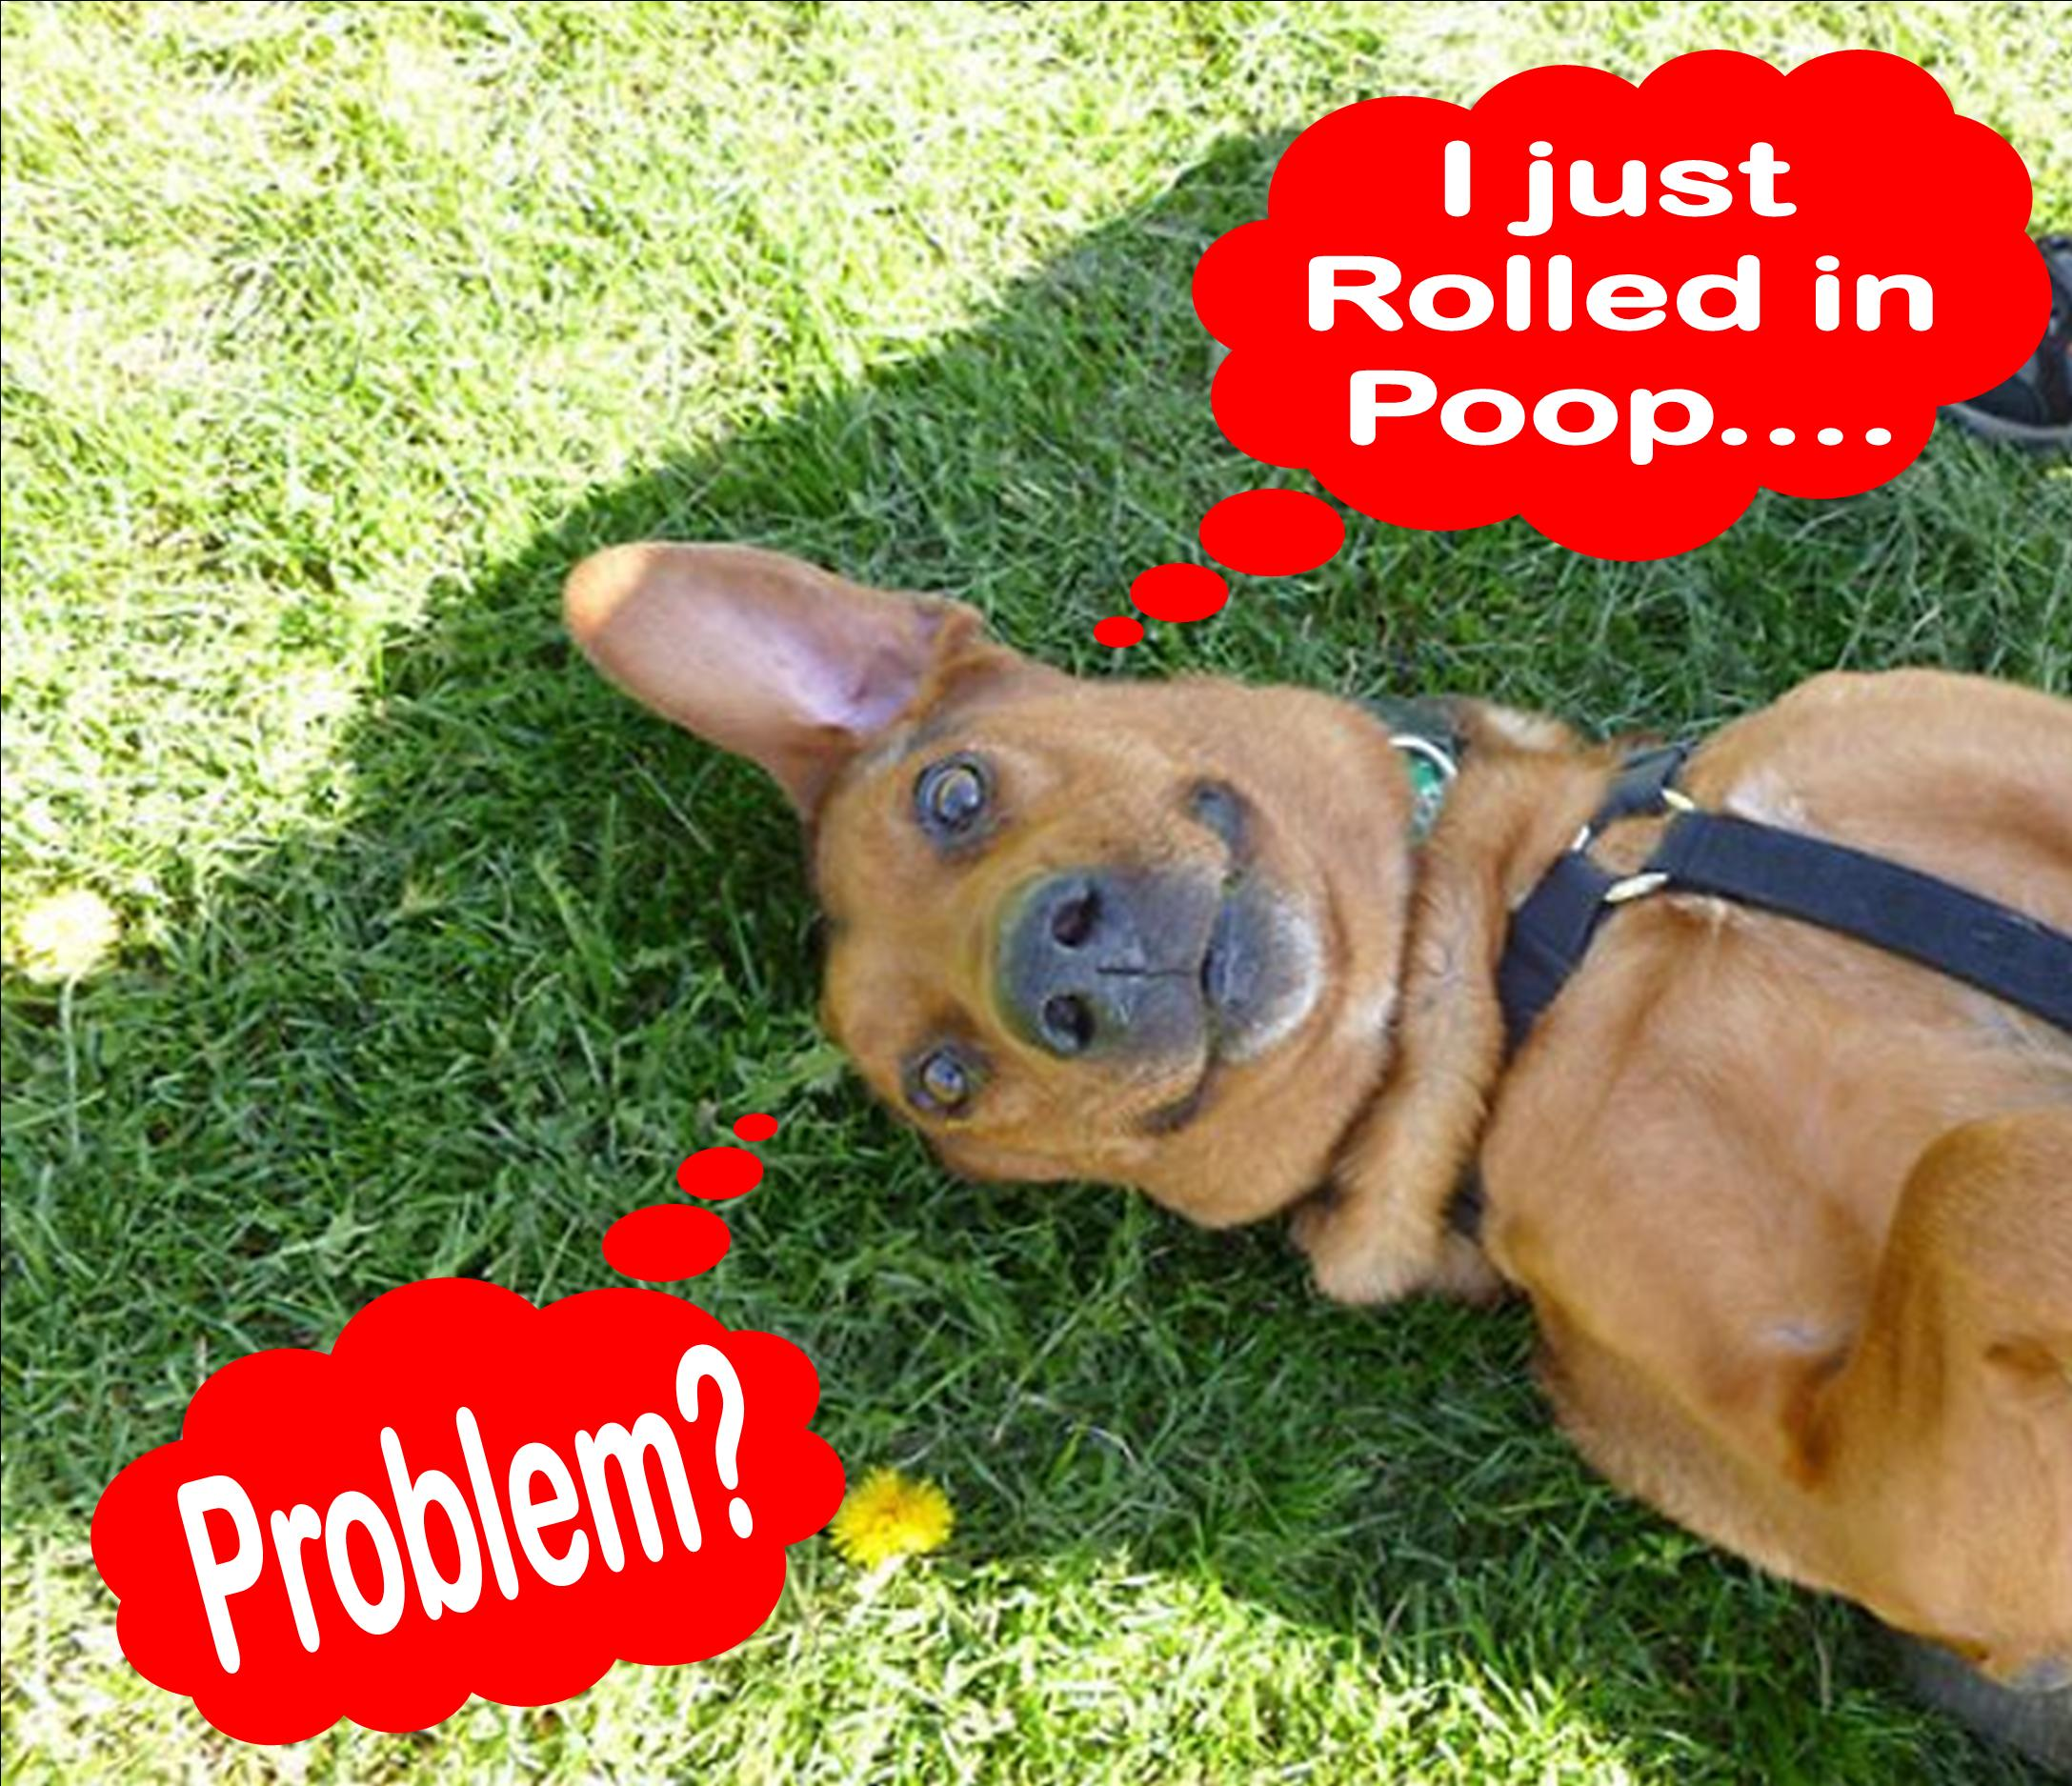 Roll in Poop, dog rolling, dog tips, dog training